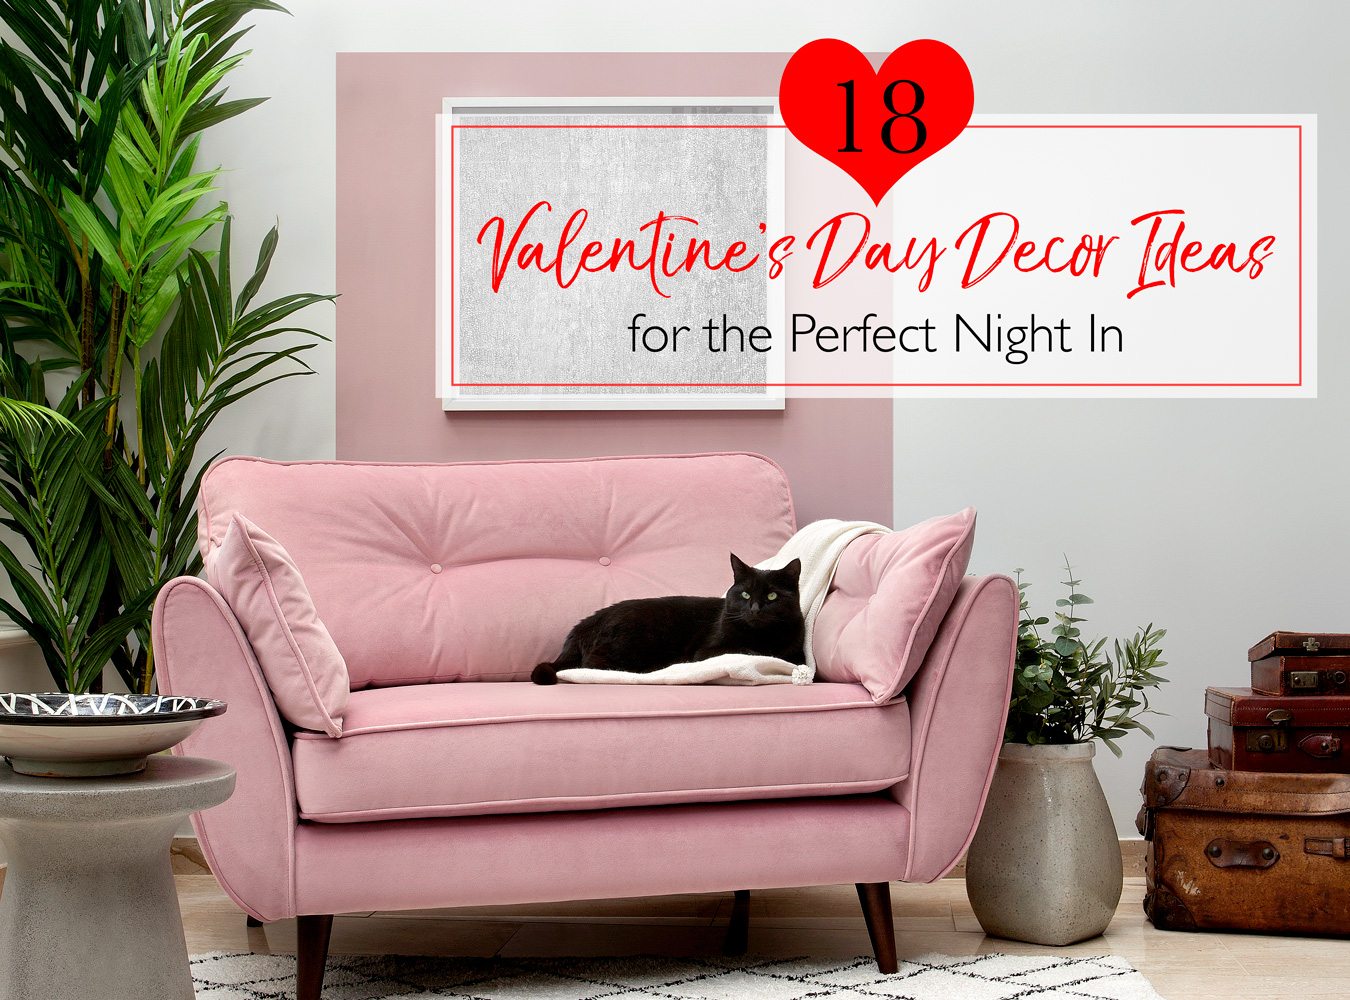 18 Valentine\'s Day Decor Ideas for the Perfect Night In - The LuxPad